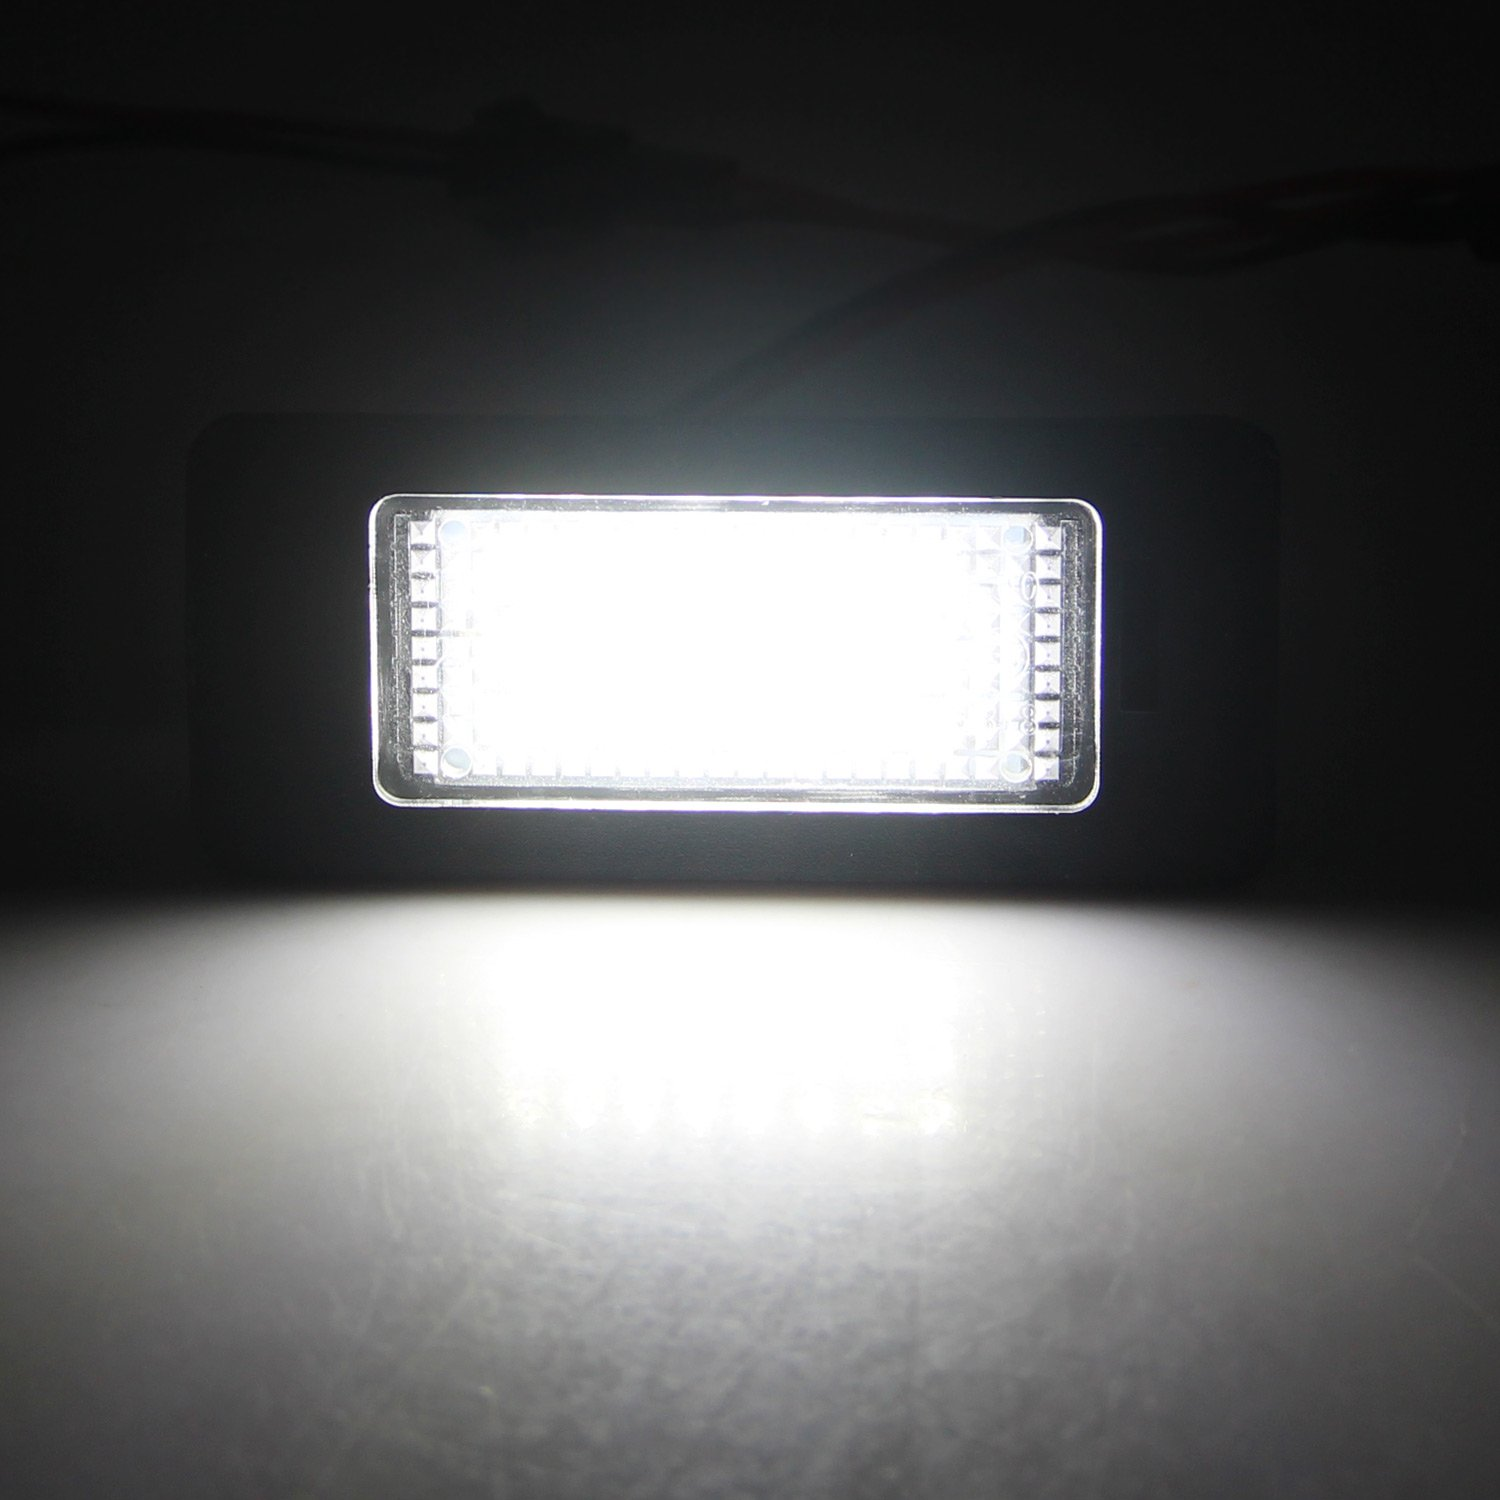 Win Power Xenon White LED License Plate Lights For CX-5 CX-7 Speed6 SY-085